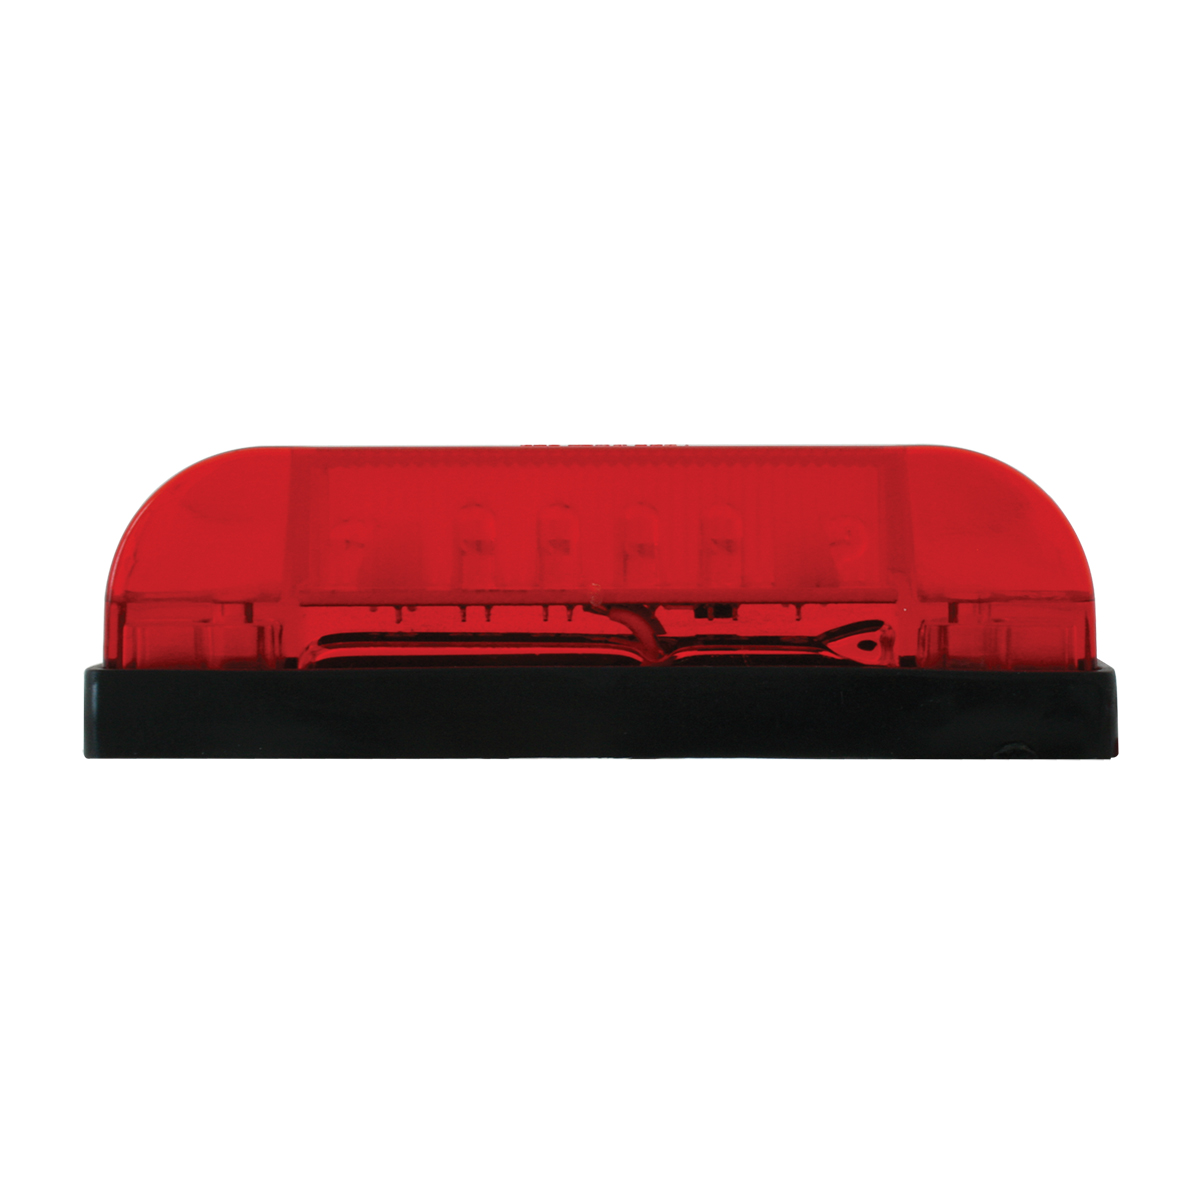 76222 Thin Line Wide Angle LED Marker Light in Red/Red